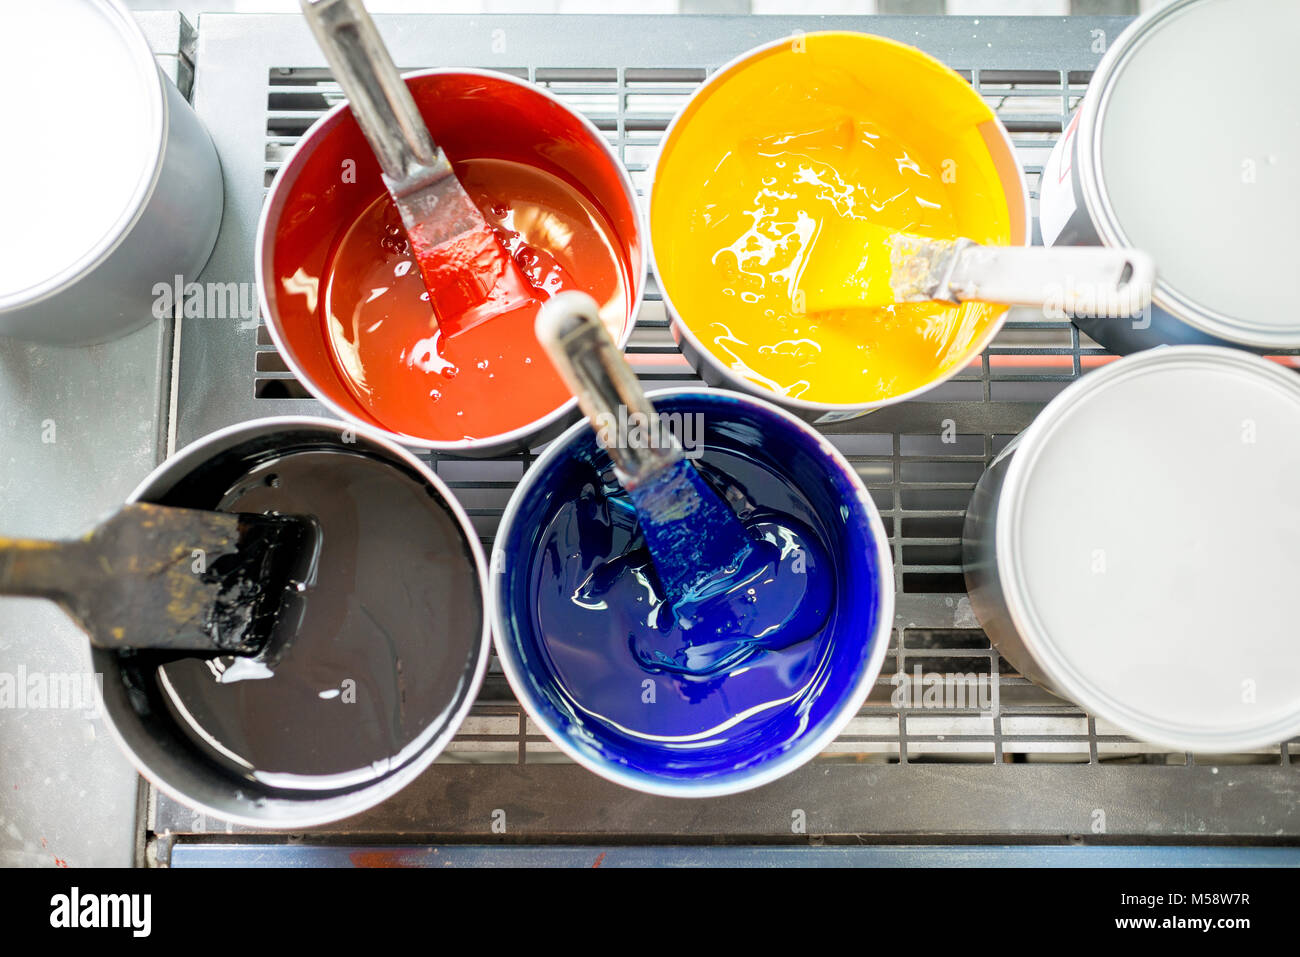 Buckets with CMYK paints - Stock Image